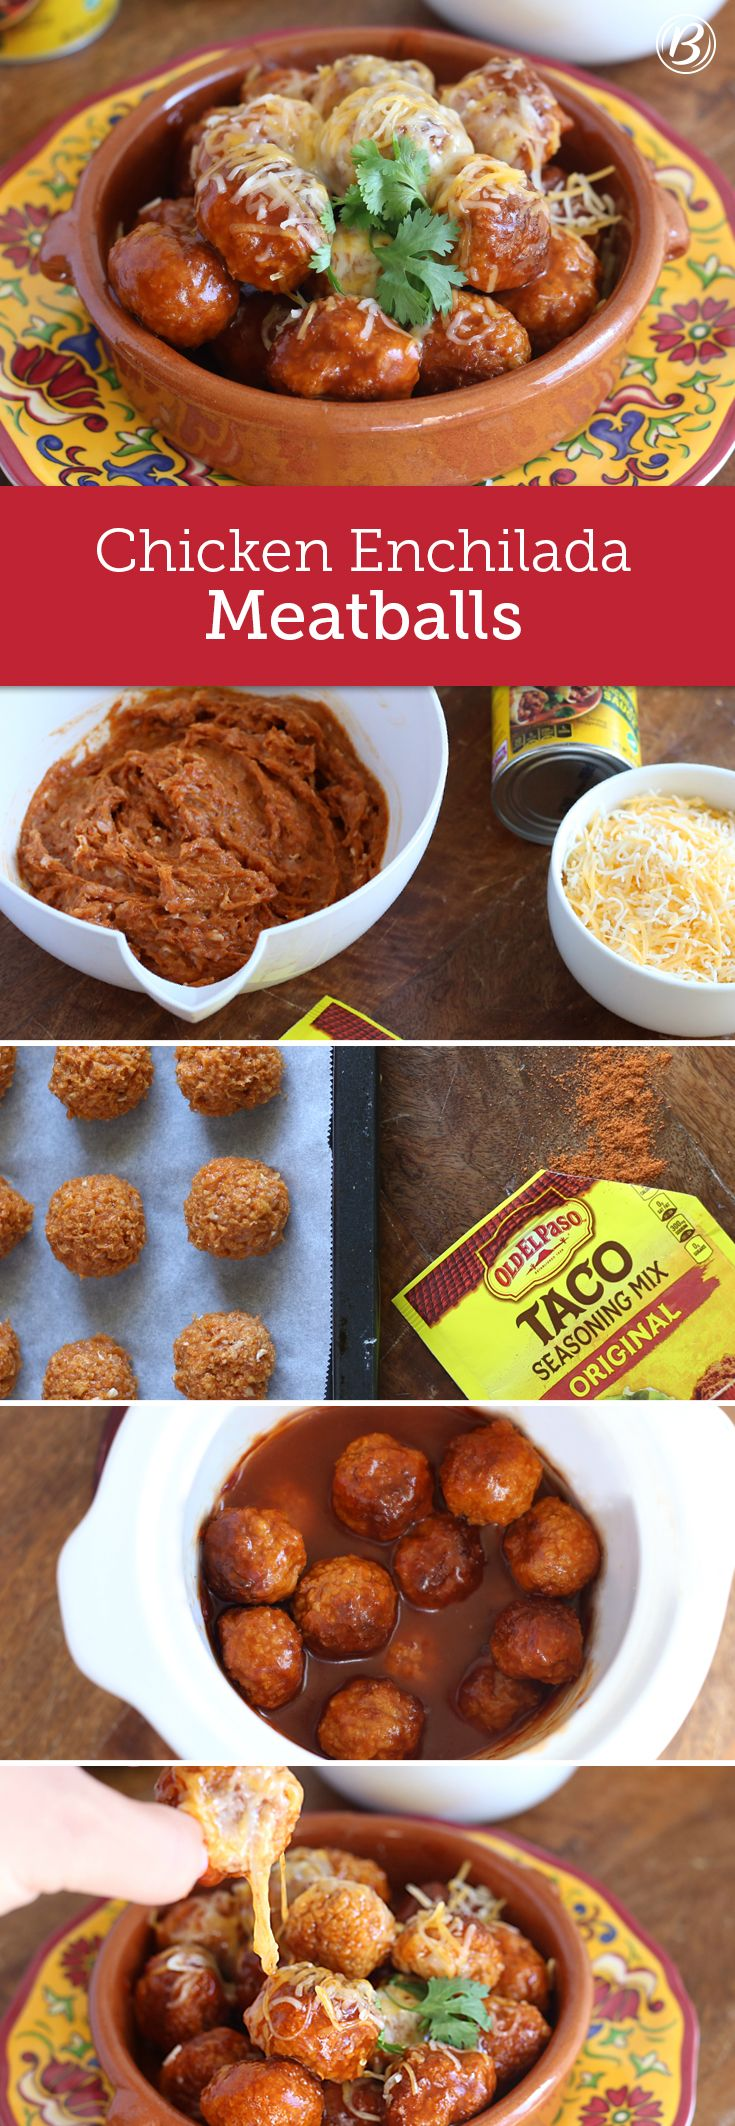 Let your slow cooker do the heaving lifting for these party-perfect 5-ingredient chicken enchilada meatballs. Serve with toothpicks as cocktail meatballs or tuck inside Old El Paso flour tortillas for killer meatball tacos or burritos.